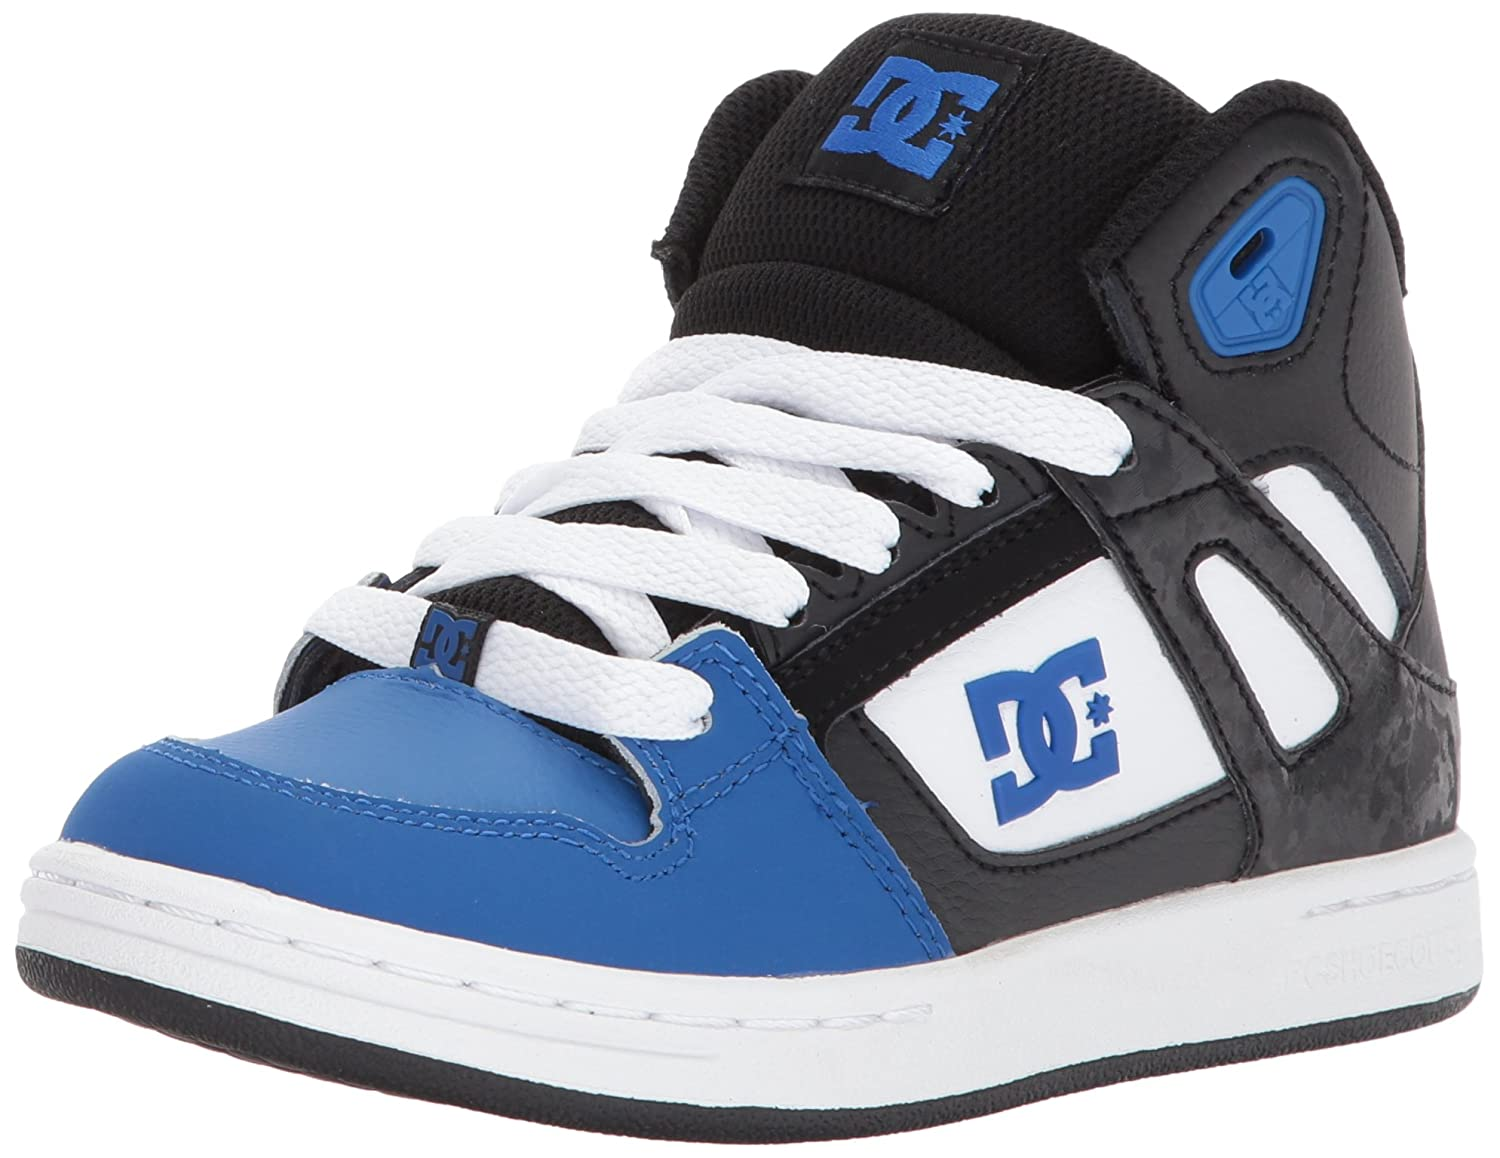 DC Boy's Rebound Leather, Rubber High Top Sneakers B071CDW5TV 5.5 M US Big Kid|Black/Blue/White